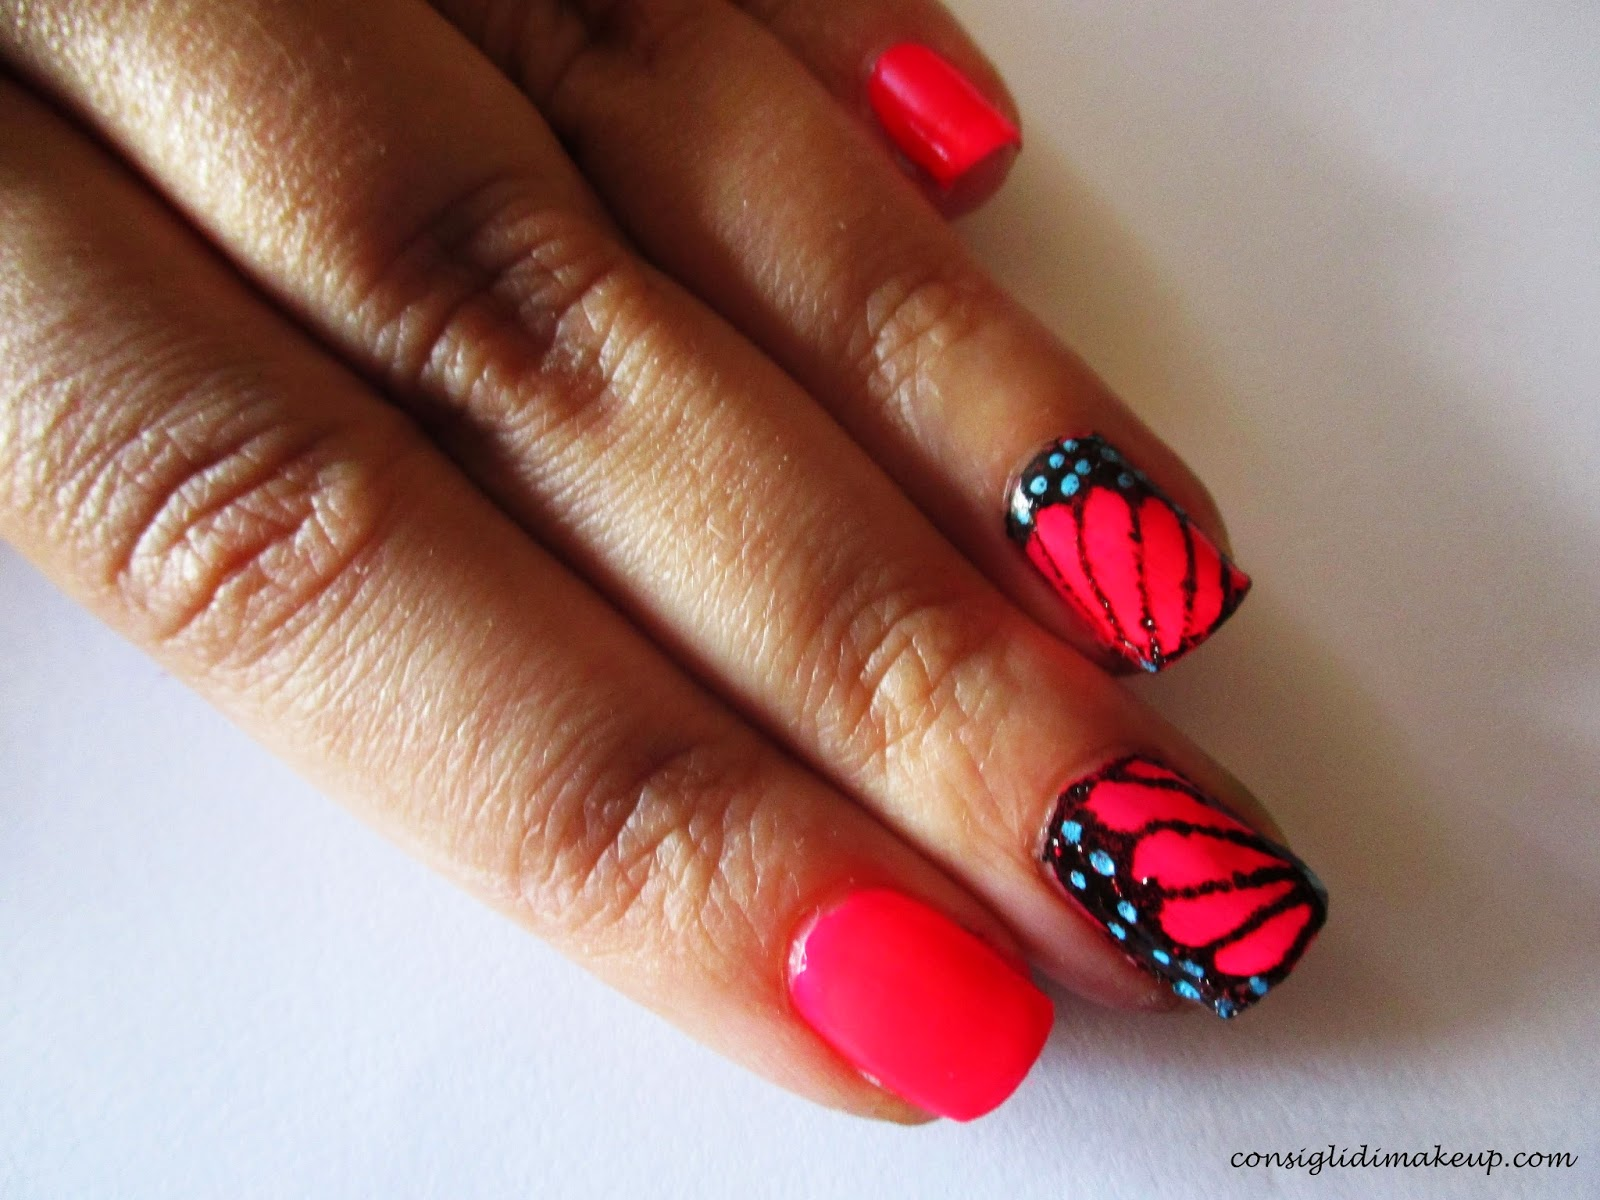 Nail art: The Butterfly Effect